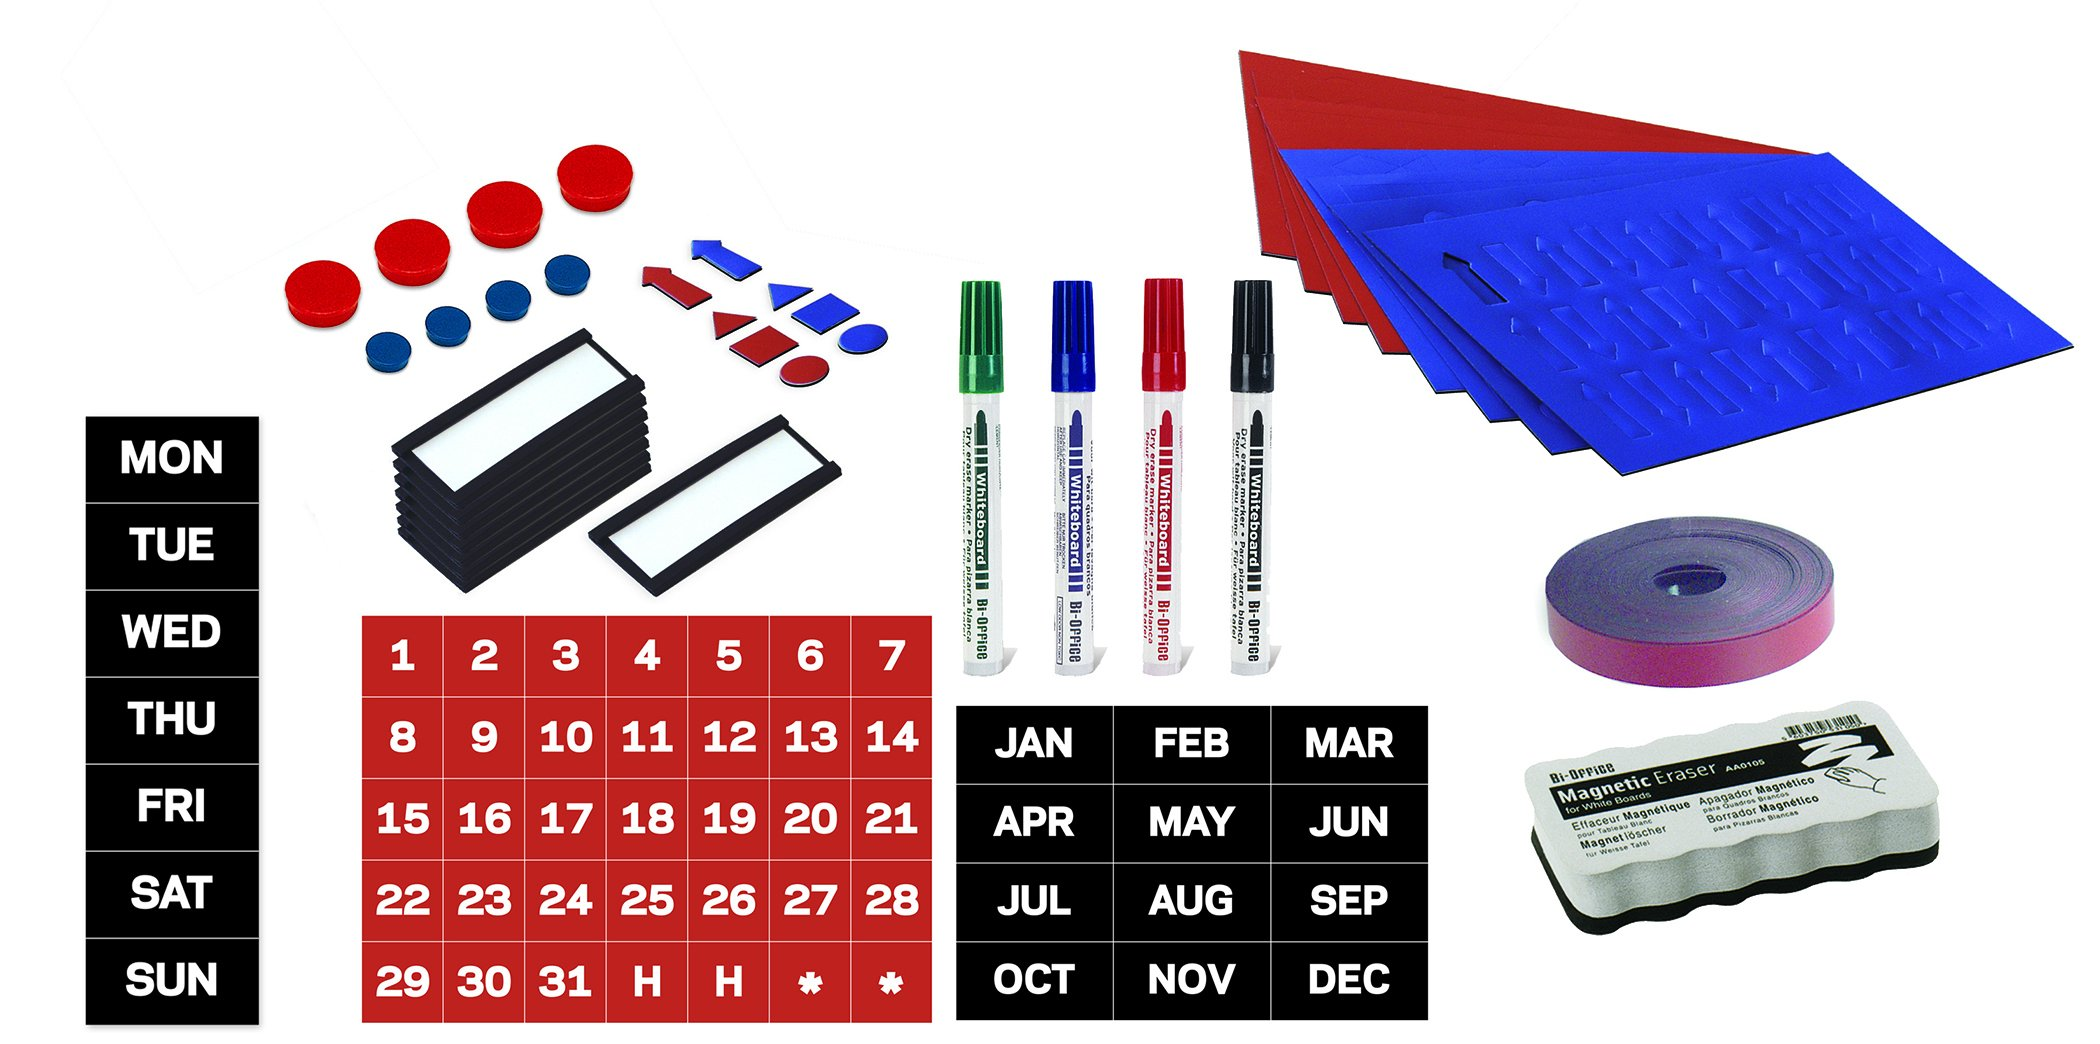 MasterVision Basic Magnetic Kit for Use with Magnetic Planning Boards, 27-Pieces